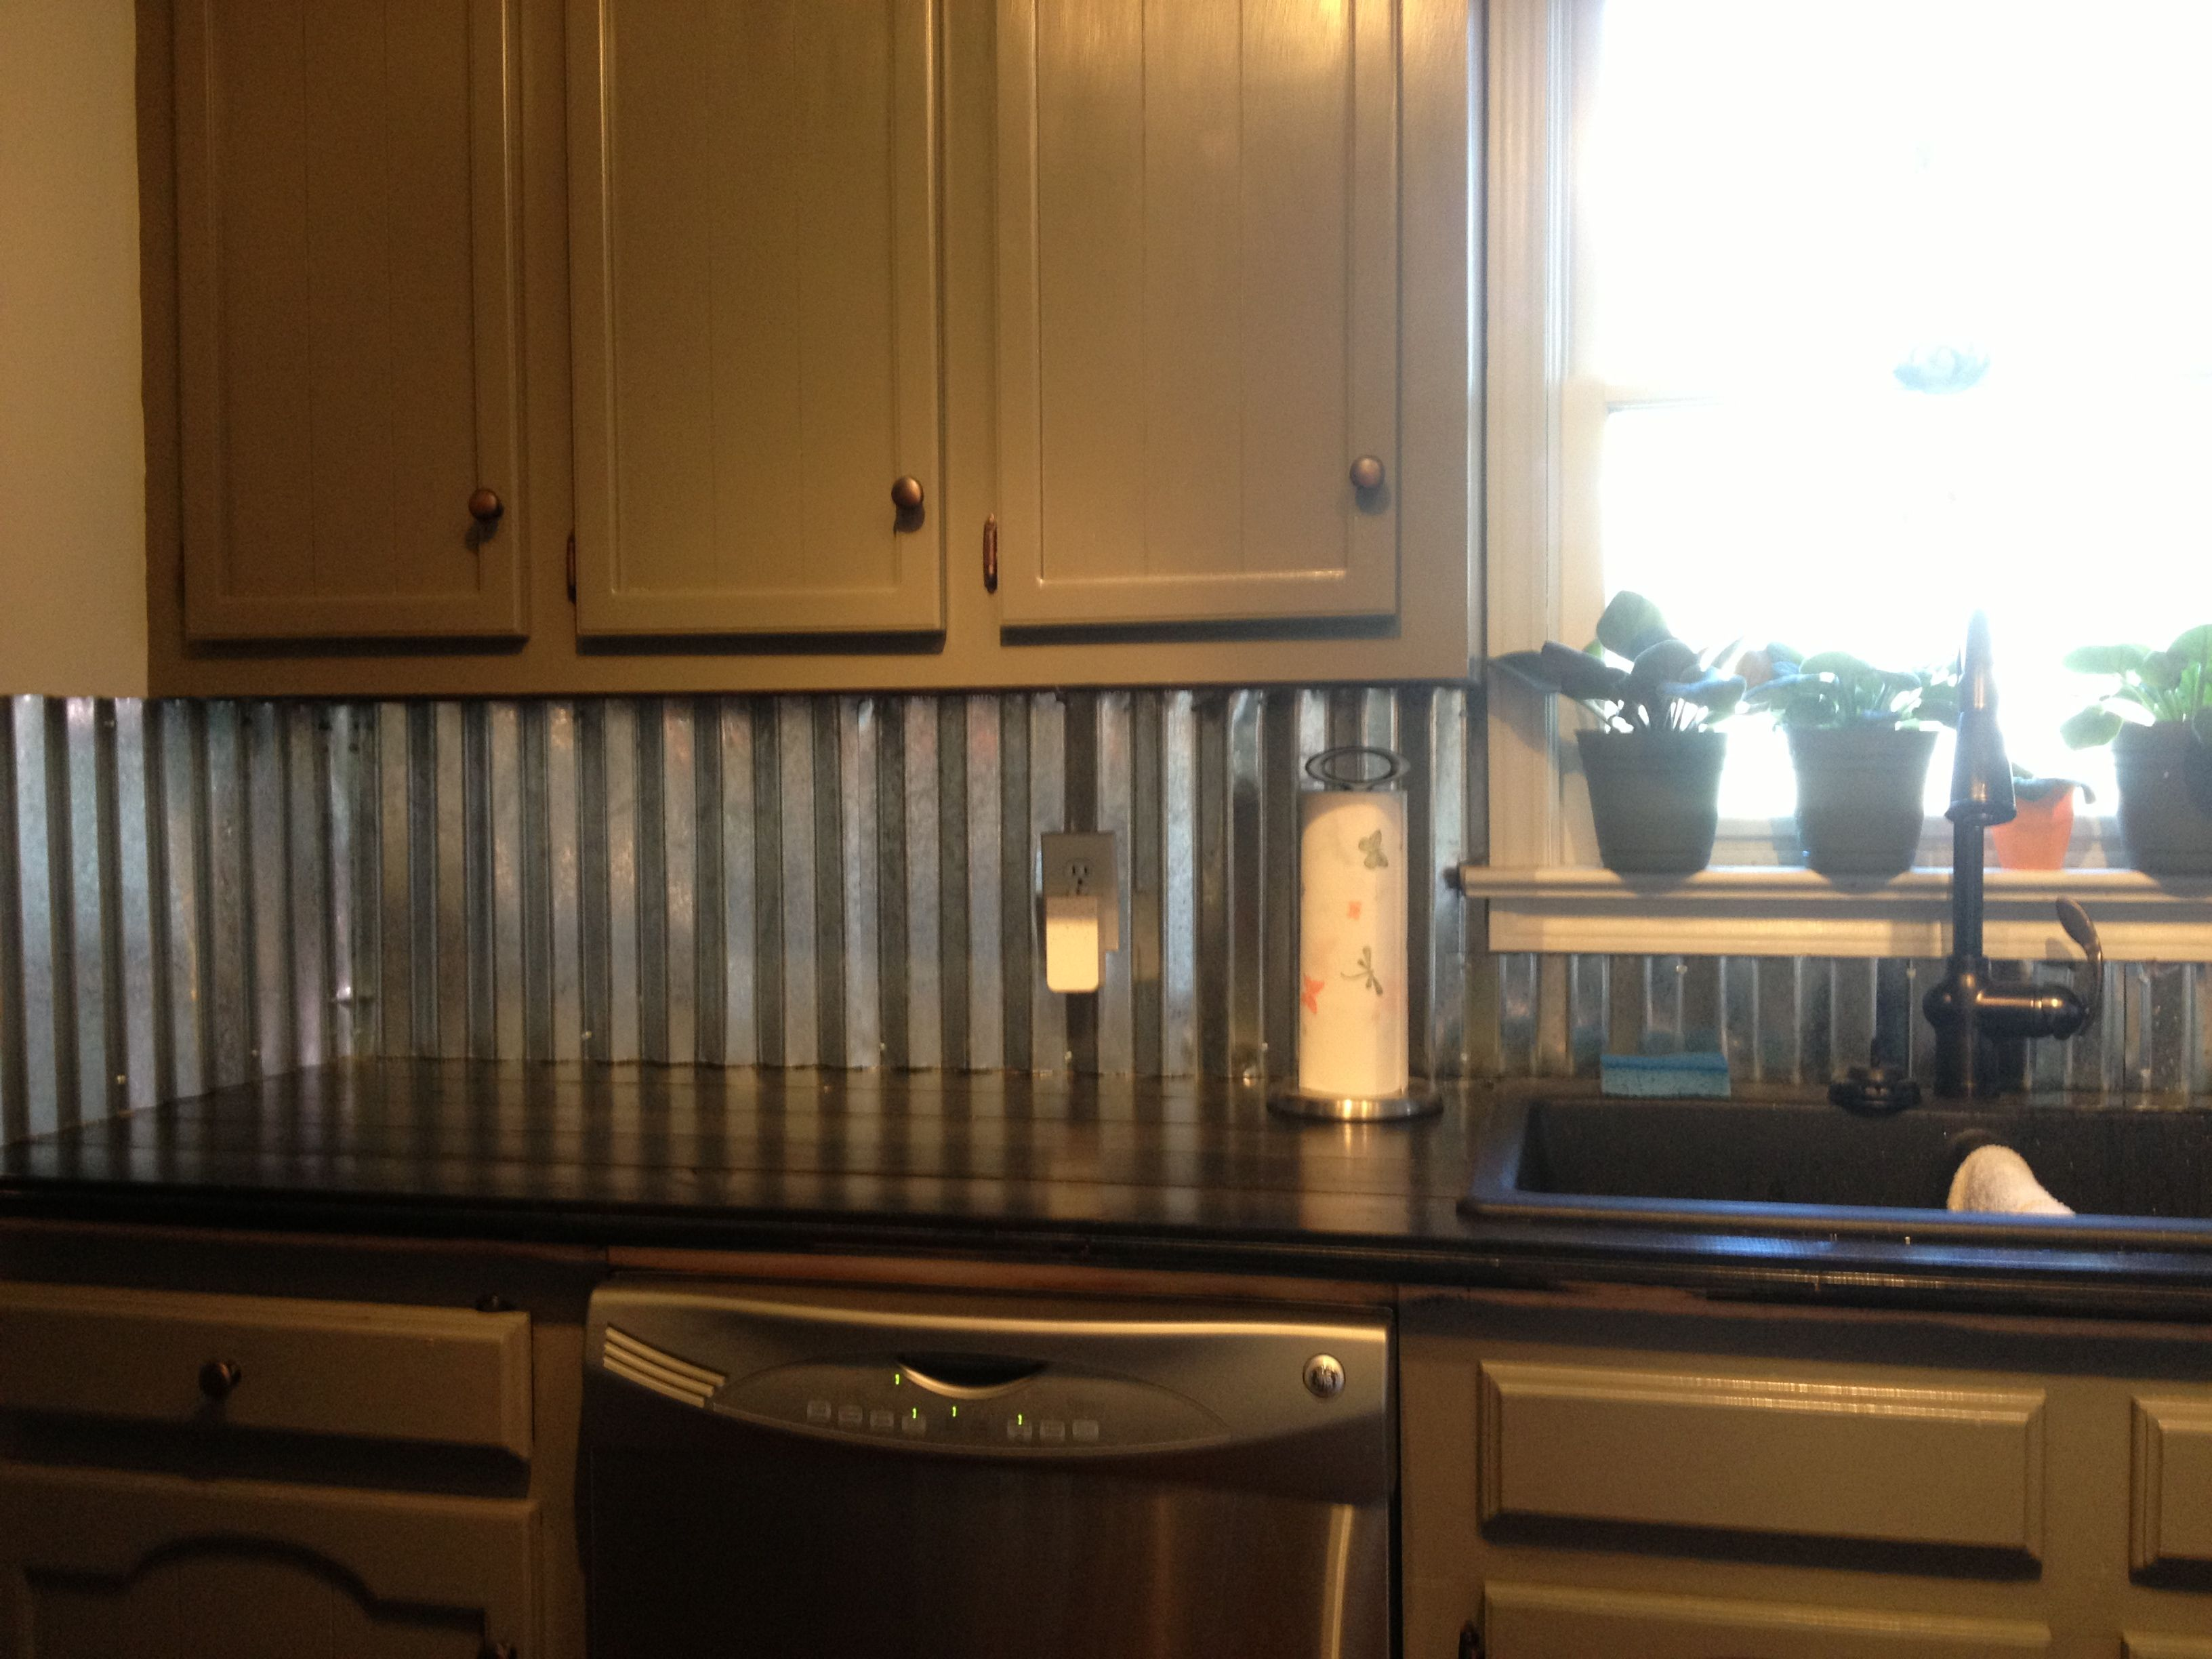 Installing A Backsplash In Kitchen Decoration Inspiration Decorating Design